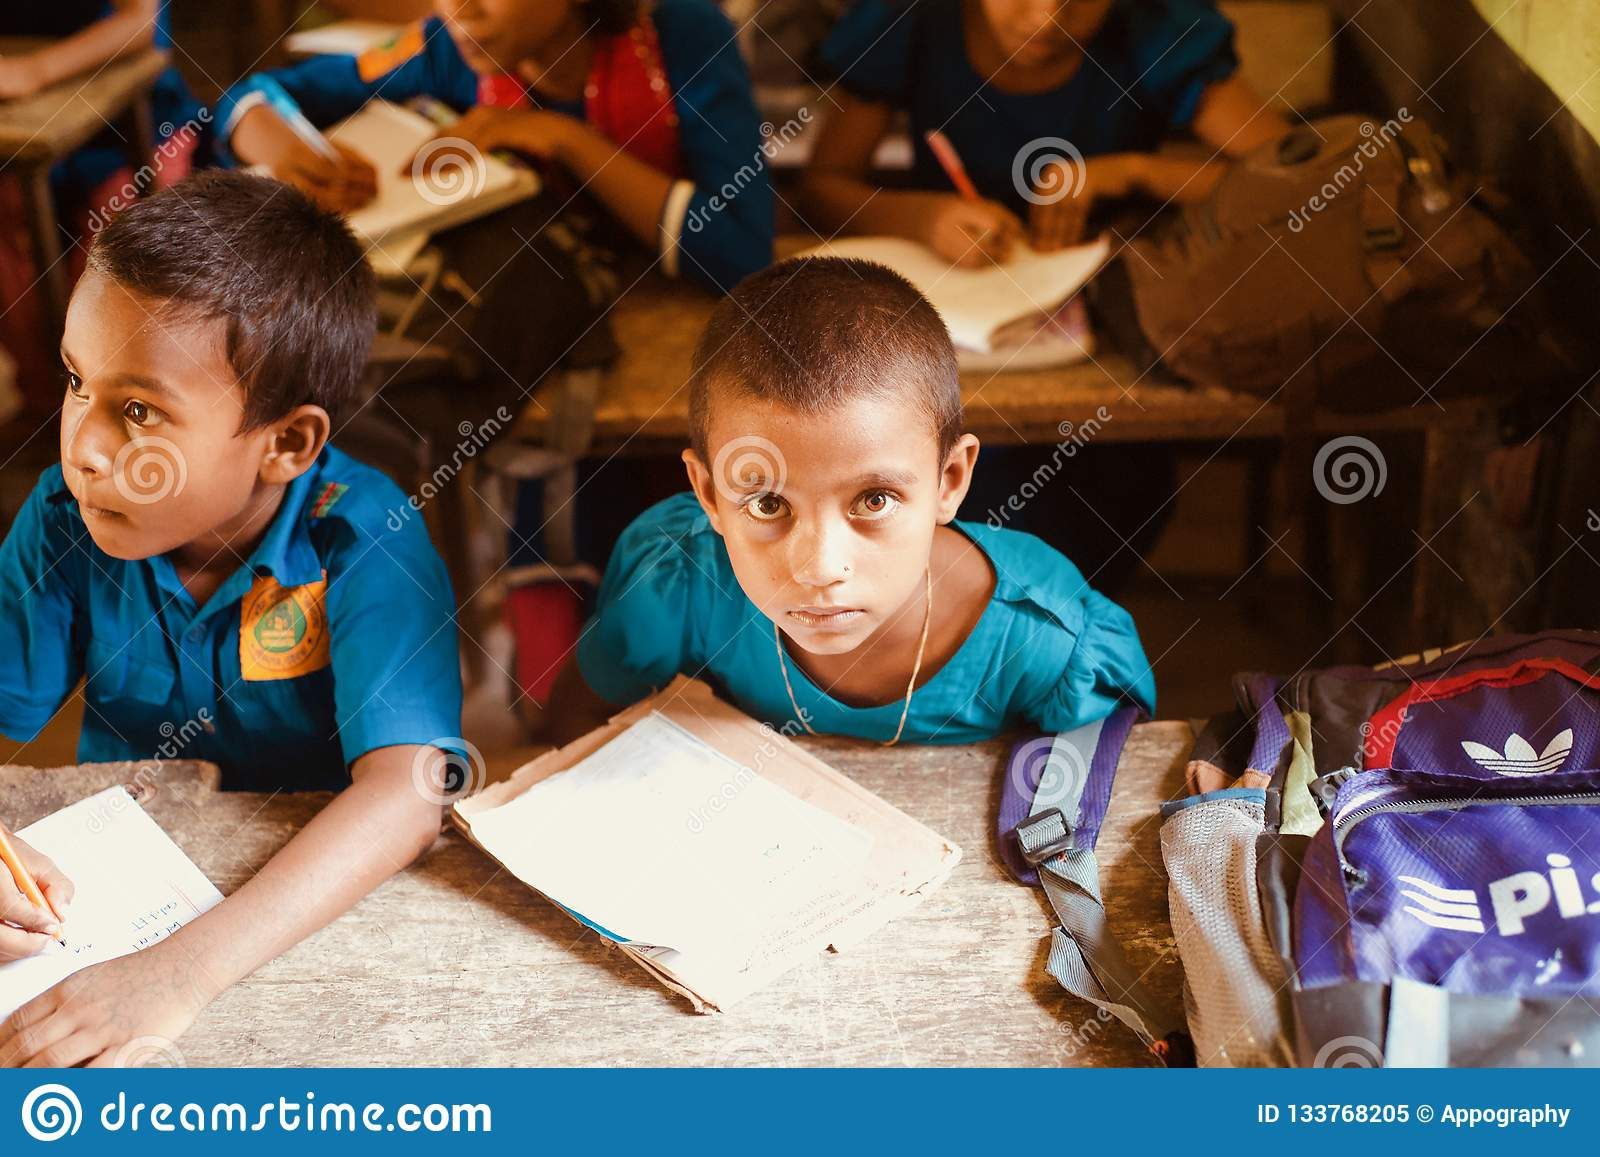 Young children studying in a classroom unique photo